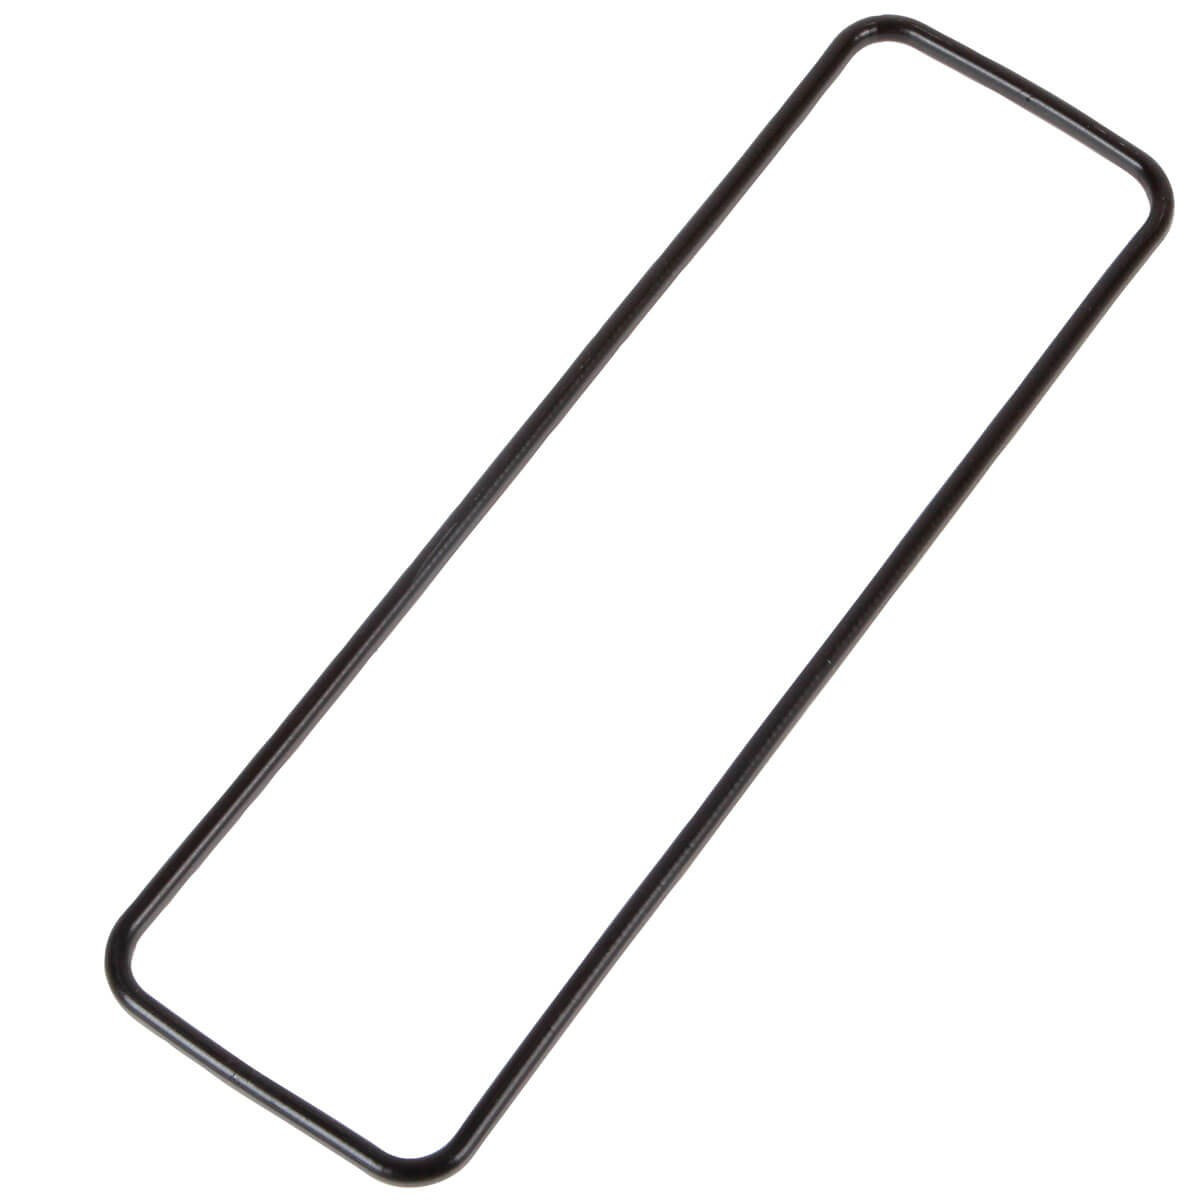 694 101 Gaskets Innovations Silicone Valve Cover Gasket